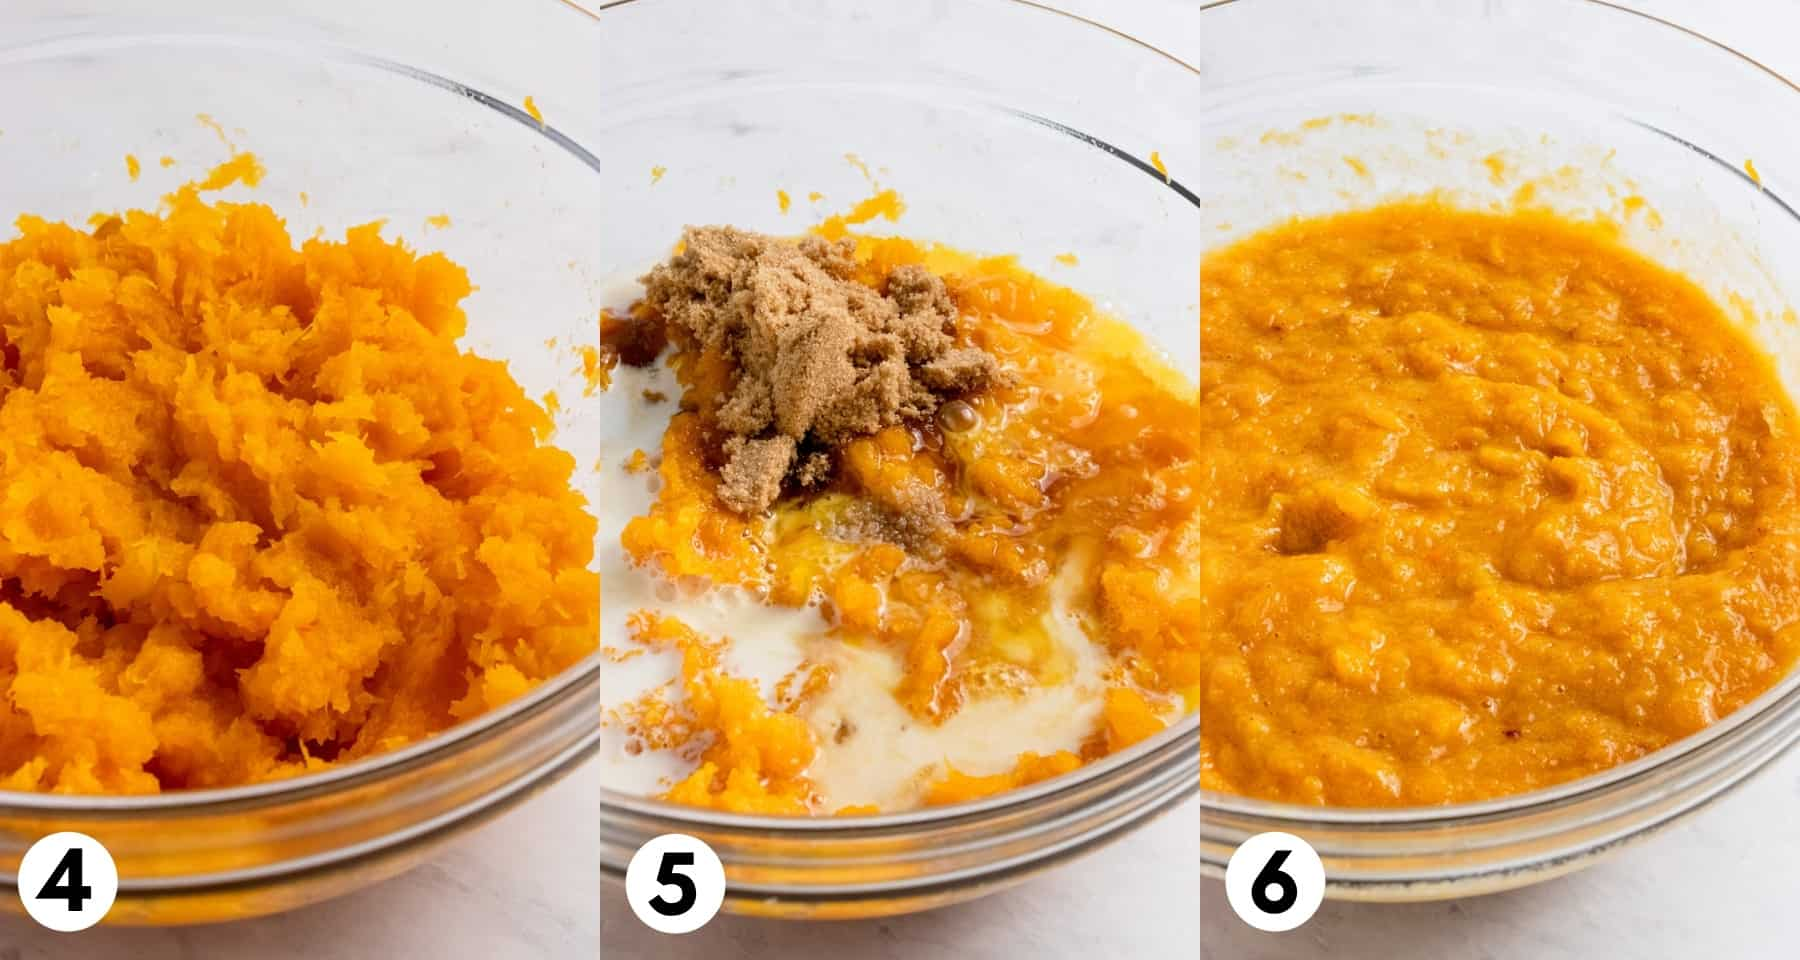 Mashed squash and ingredients mixed together in bowl.